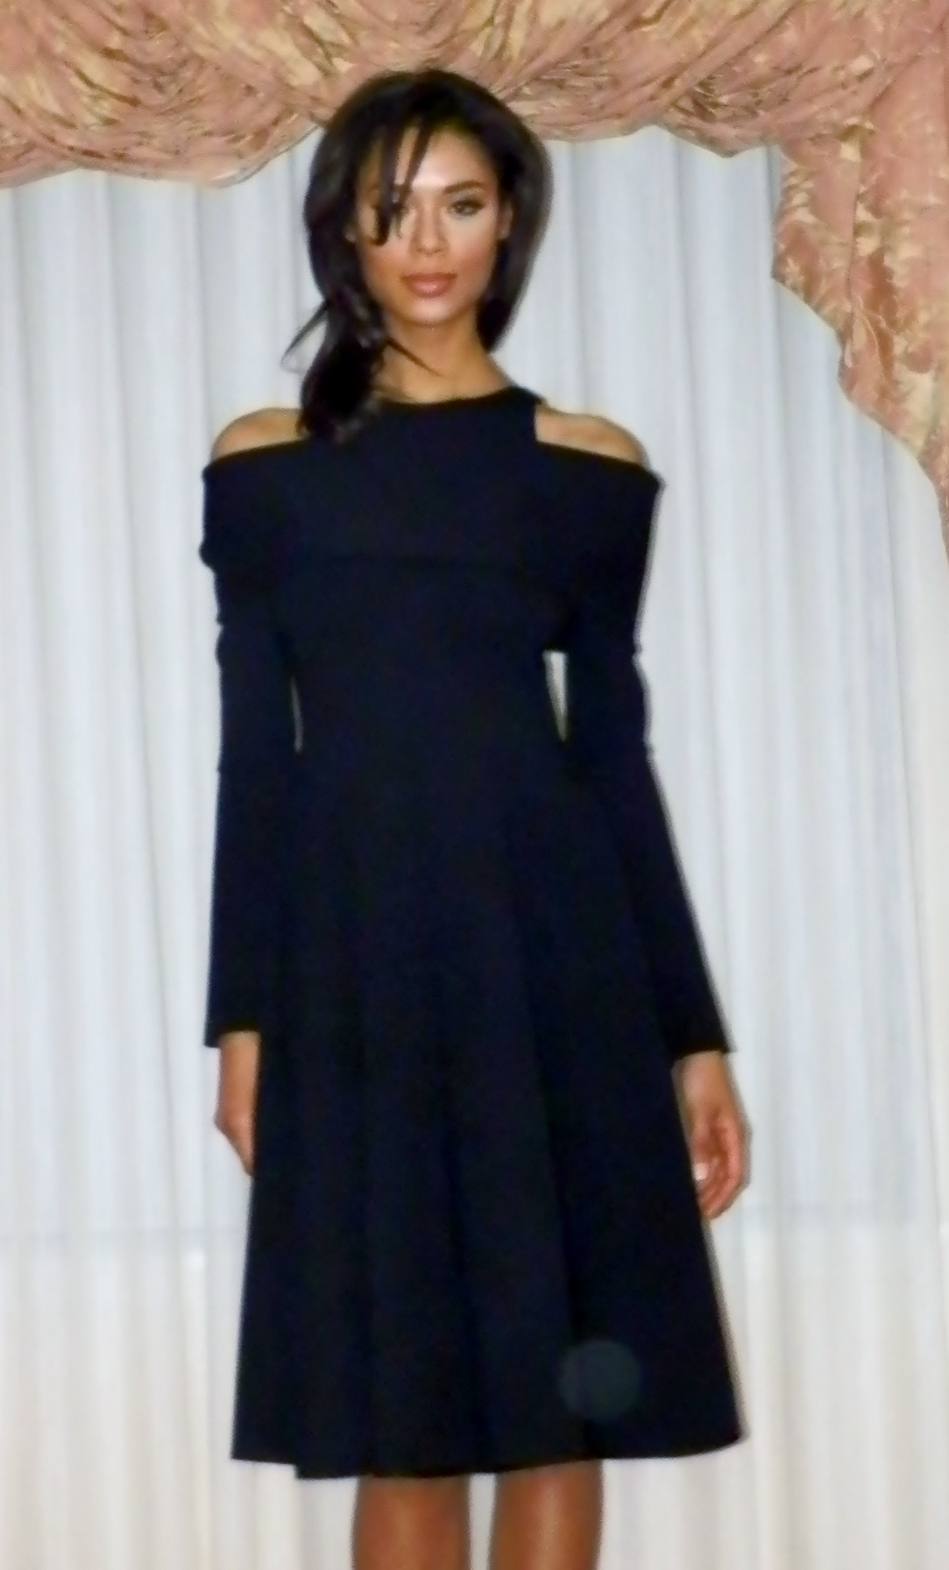 Black dress with shoulder cut-out